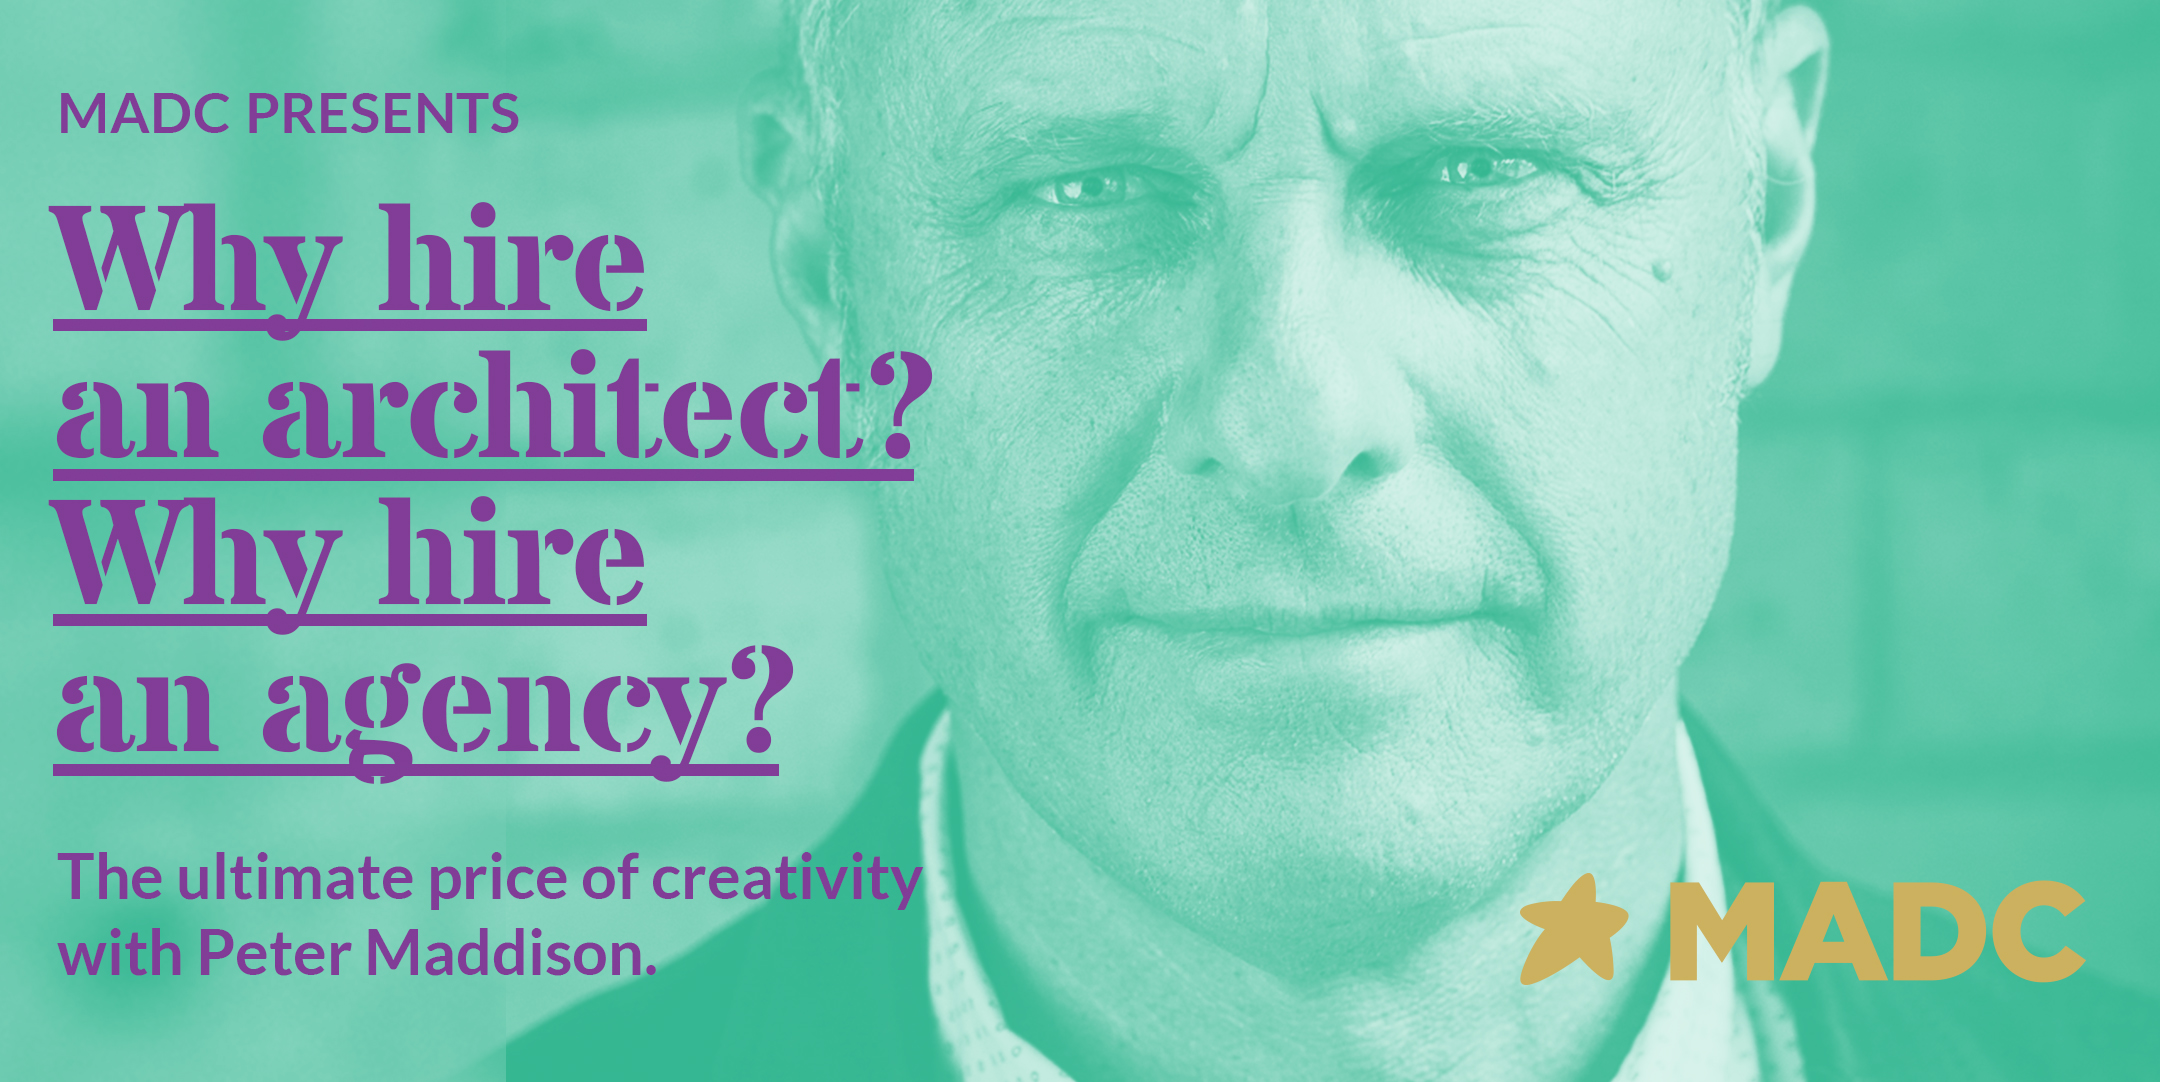 MADC Presents: 'Why hire an architect? Why hire an agency?' with Peter Maddison on Tues, June 11